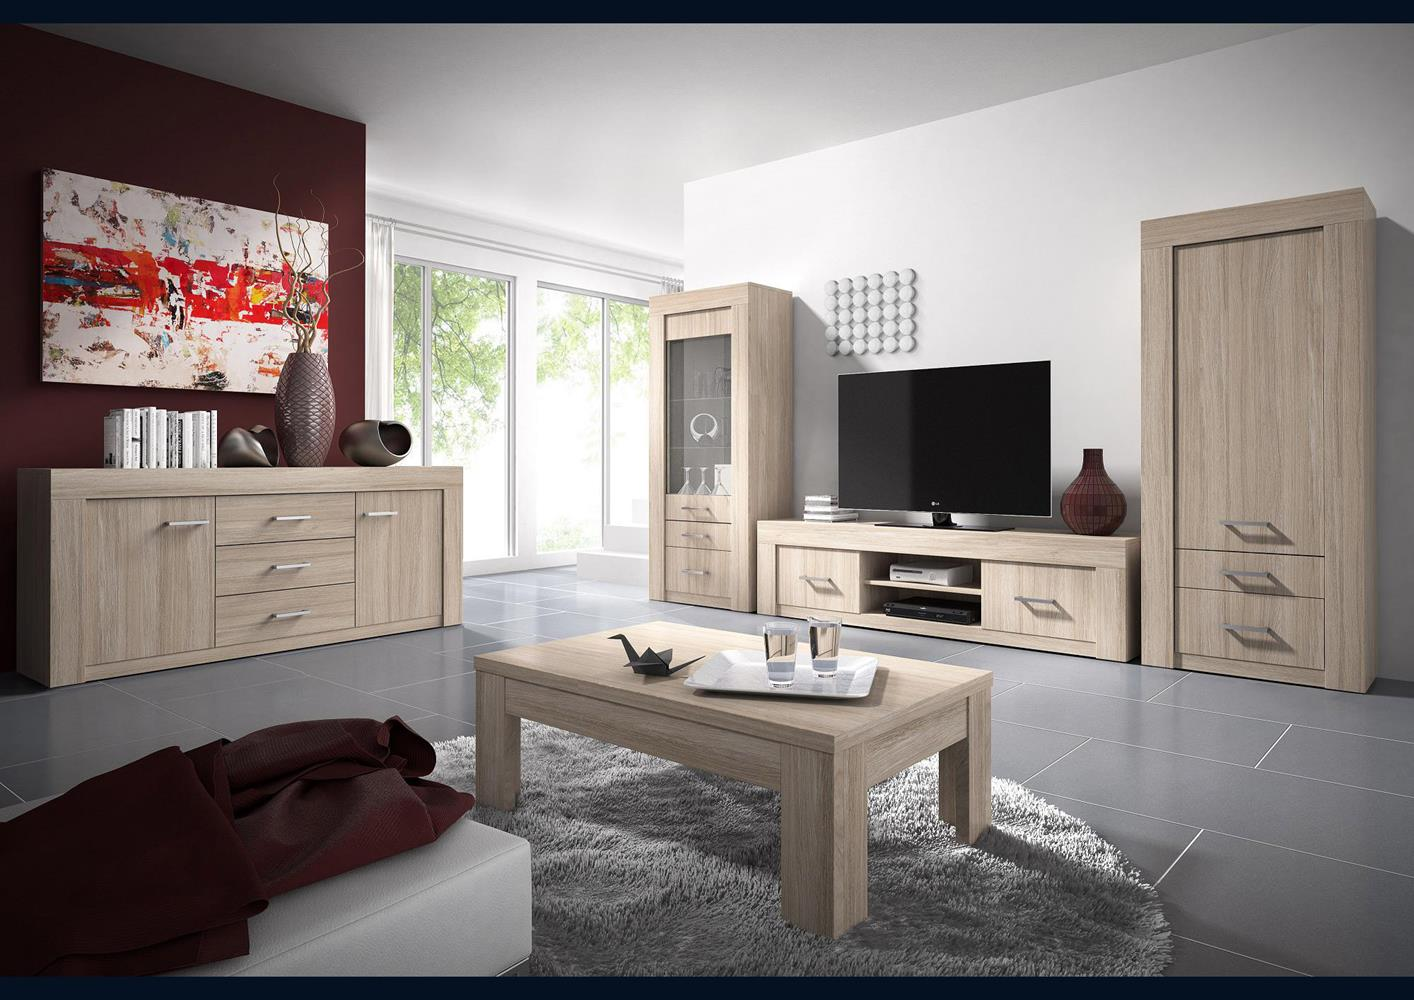 acheter votre meuble t l moderne 2 portes 1 niche chez simeuble. Black Bedroom Furniture Sets. Home Design Ideas